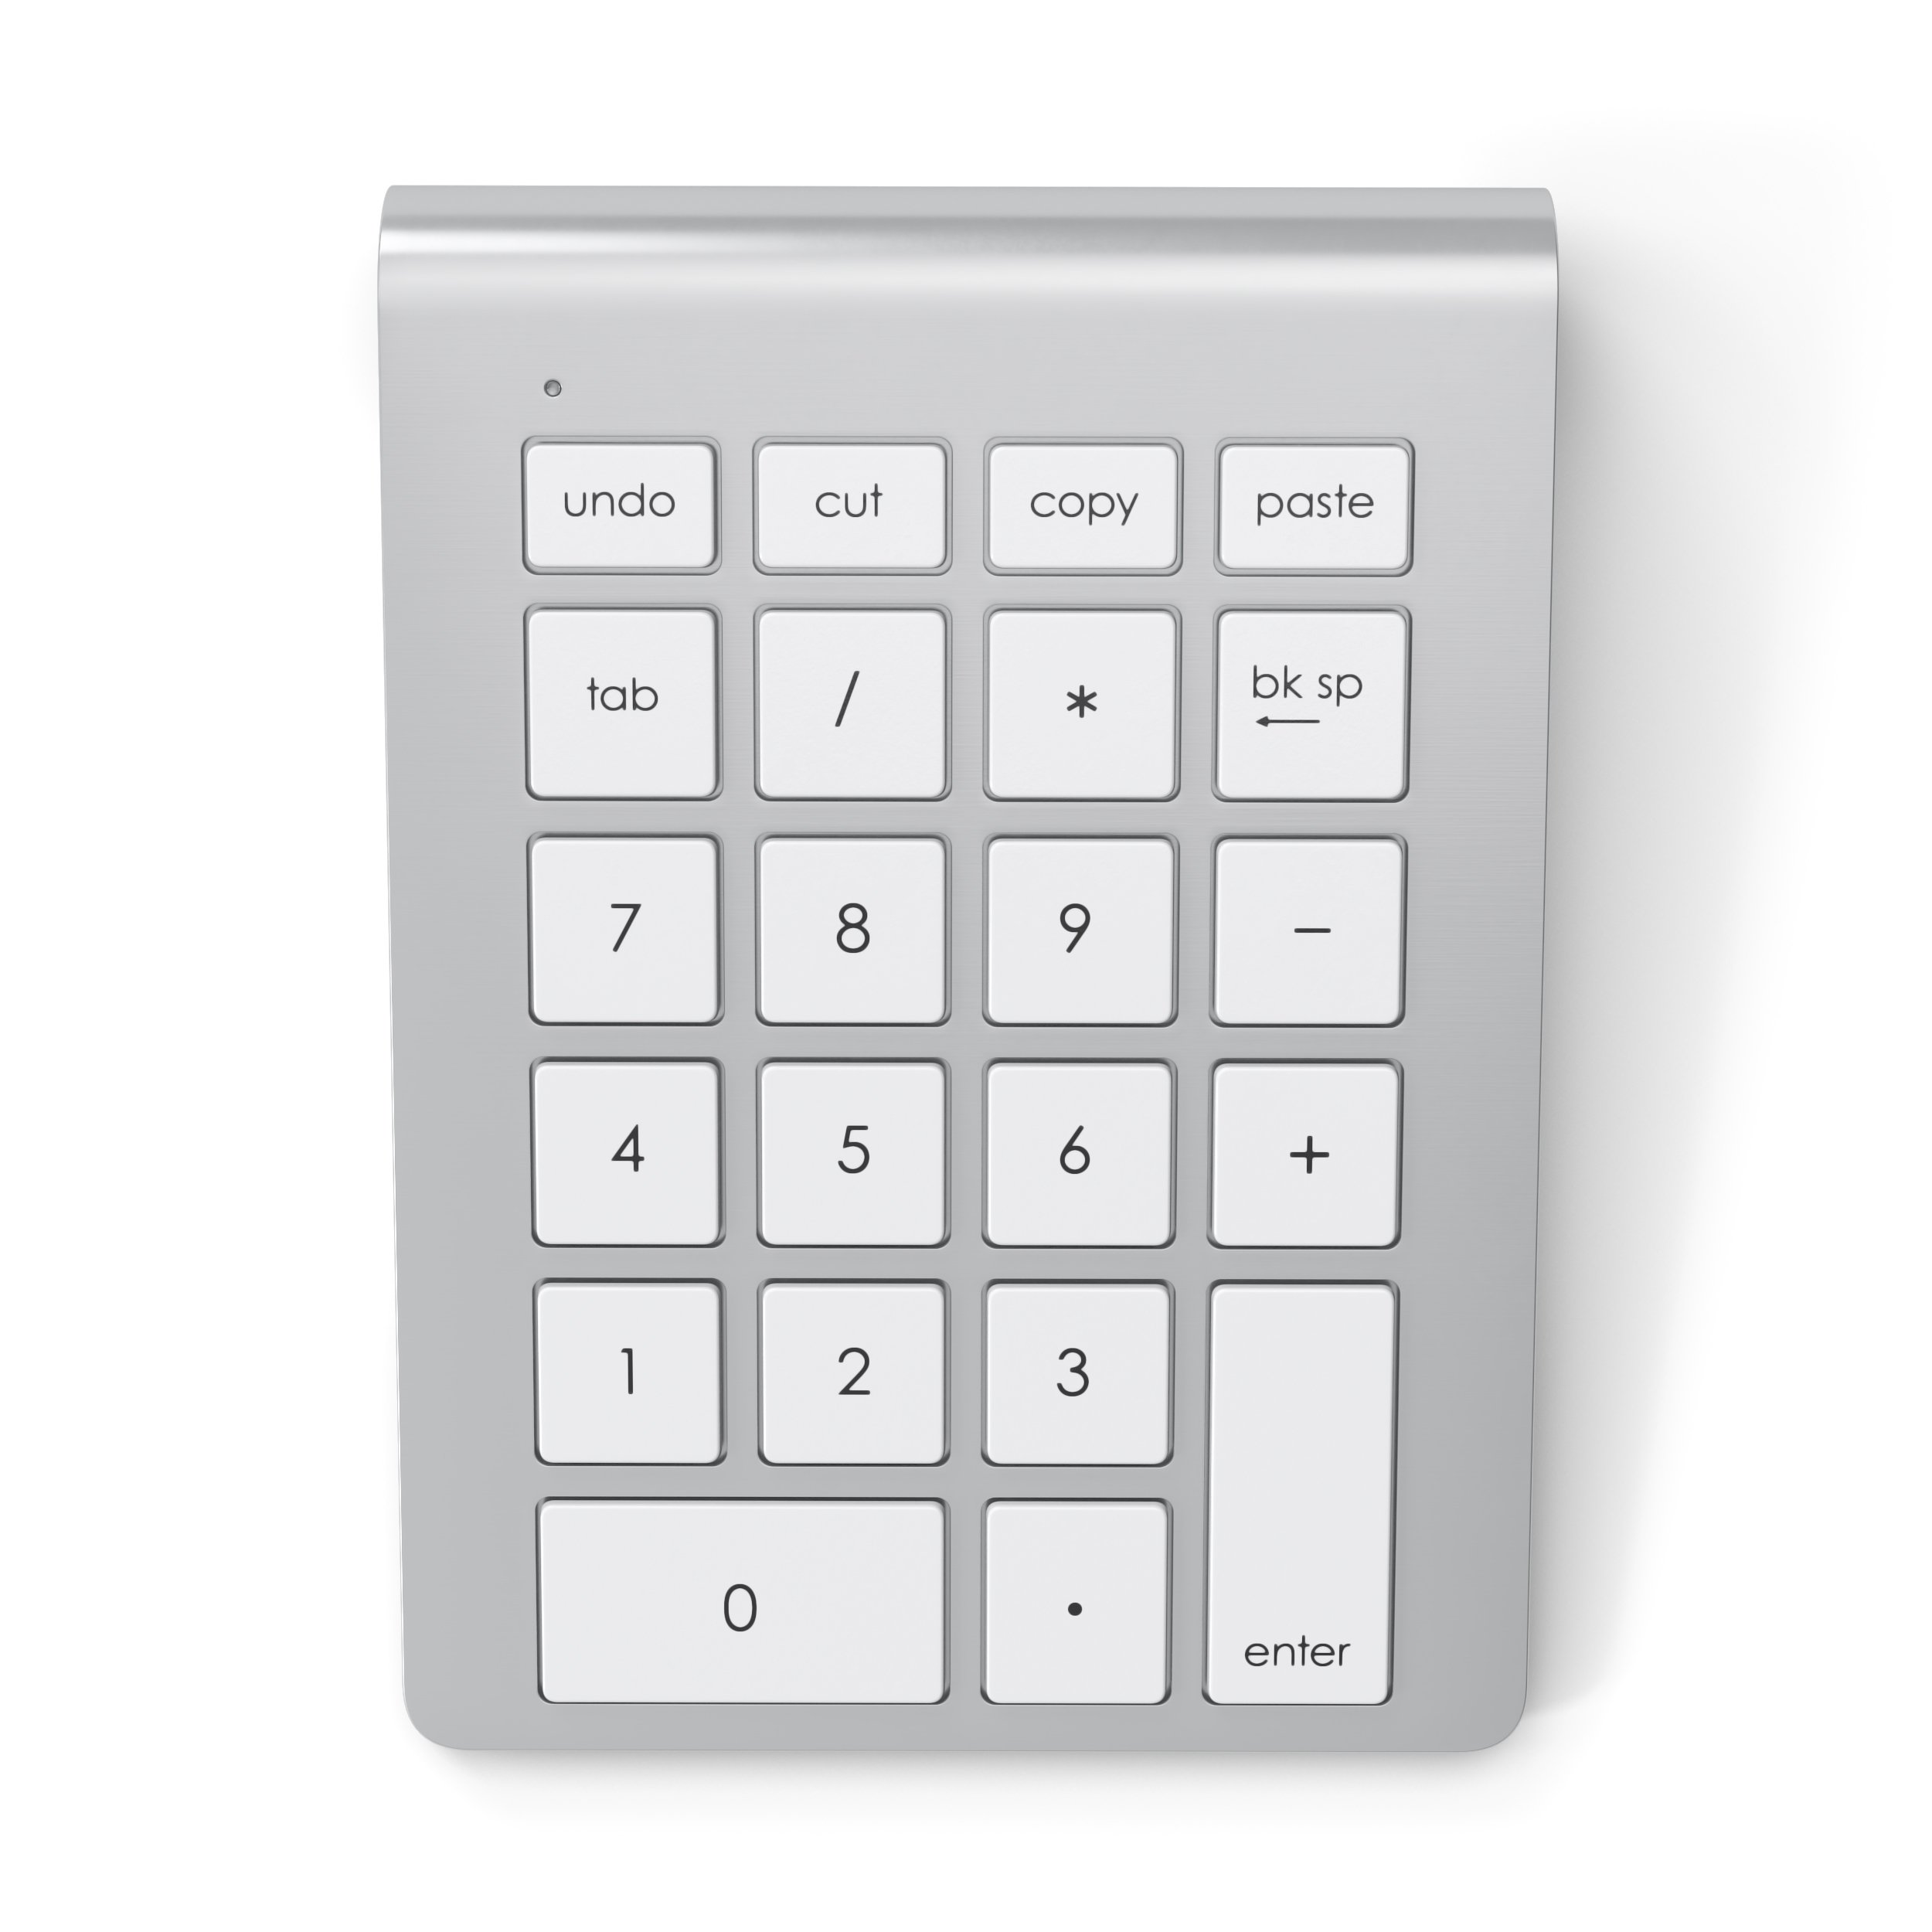 Satechi Portable Aluminum Bluetooth Wireless 22-Key Keypad Keyboard Extension for Data Entry in Excel and Numbers with Keyboard Shortcuts (Cut, Copy, Paste, Undo) for Laptops, Macs, PCs (Silver)